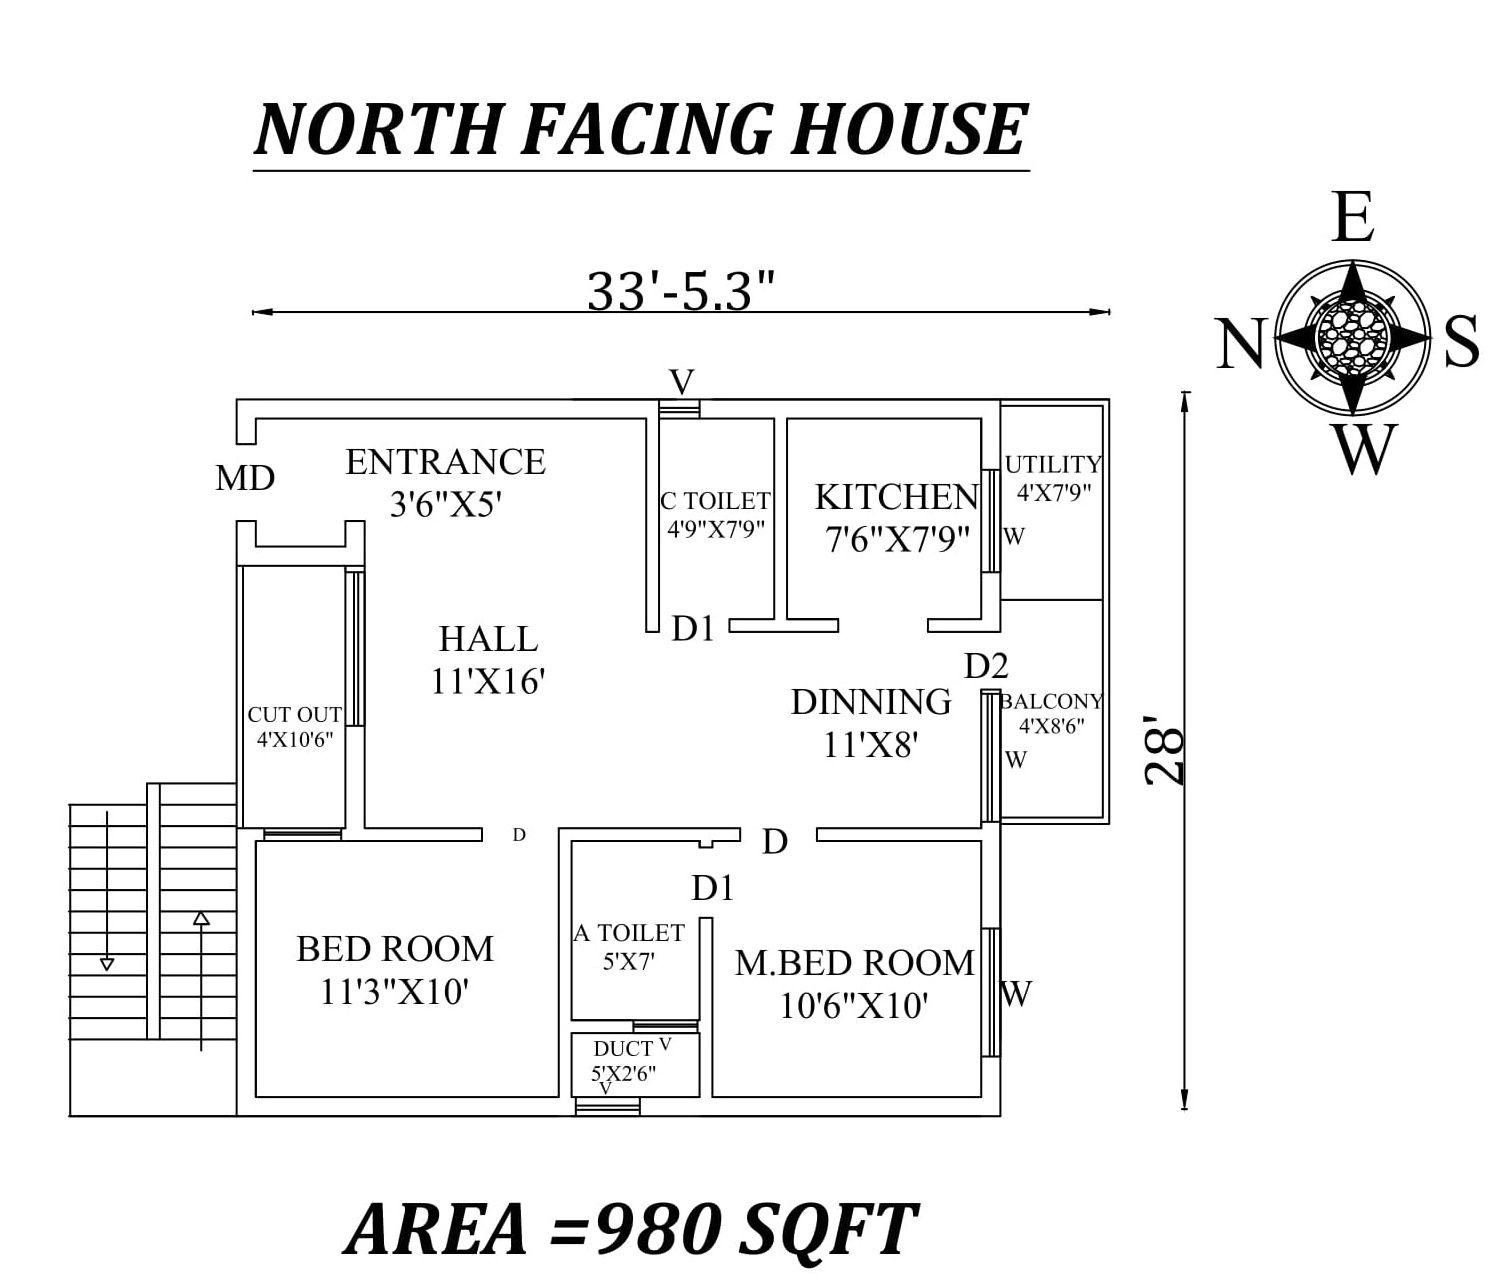 33 X28 Amazing North Facing 2bhk House Plan As Per Vastu Shastra Autocad Dwg And Pdf File Details 2bhk House Plan North Facing House House Plans